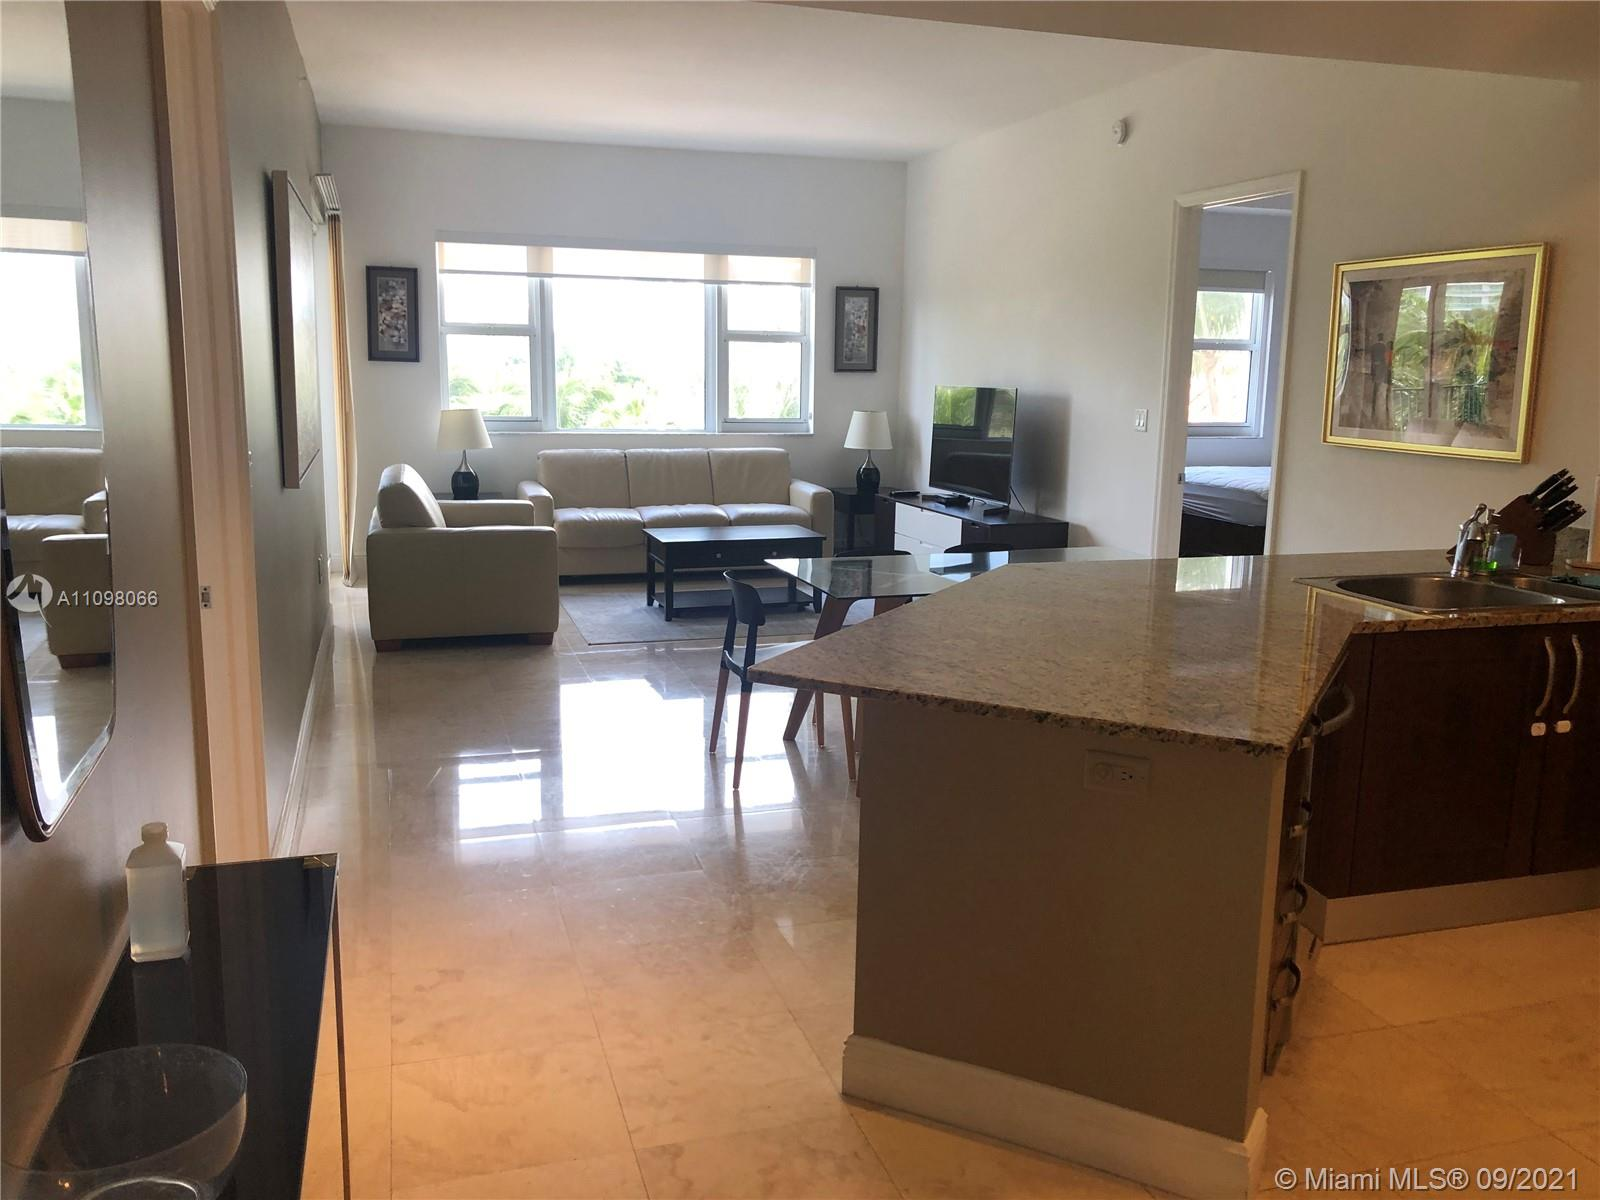 TURNBERRY VLG NO TOWER CO Condo,For Rent,TURNBERRY VLG NO TOWER CO Brickell,realty,broker,condos near me